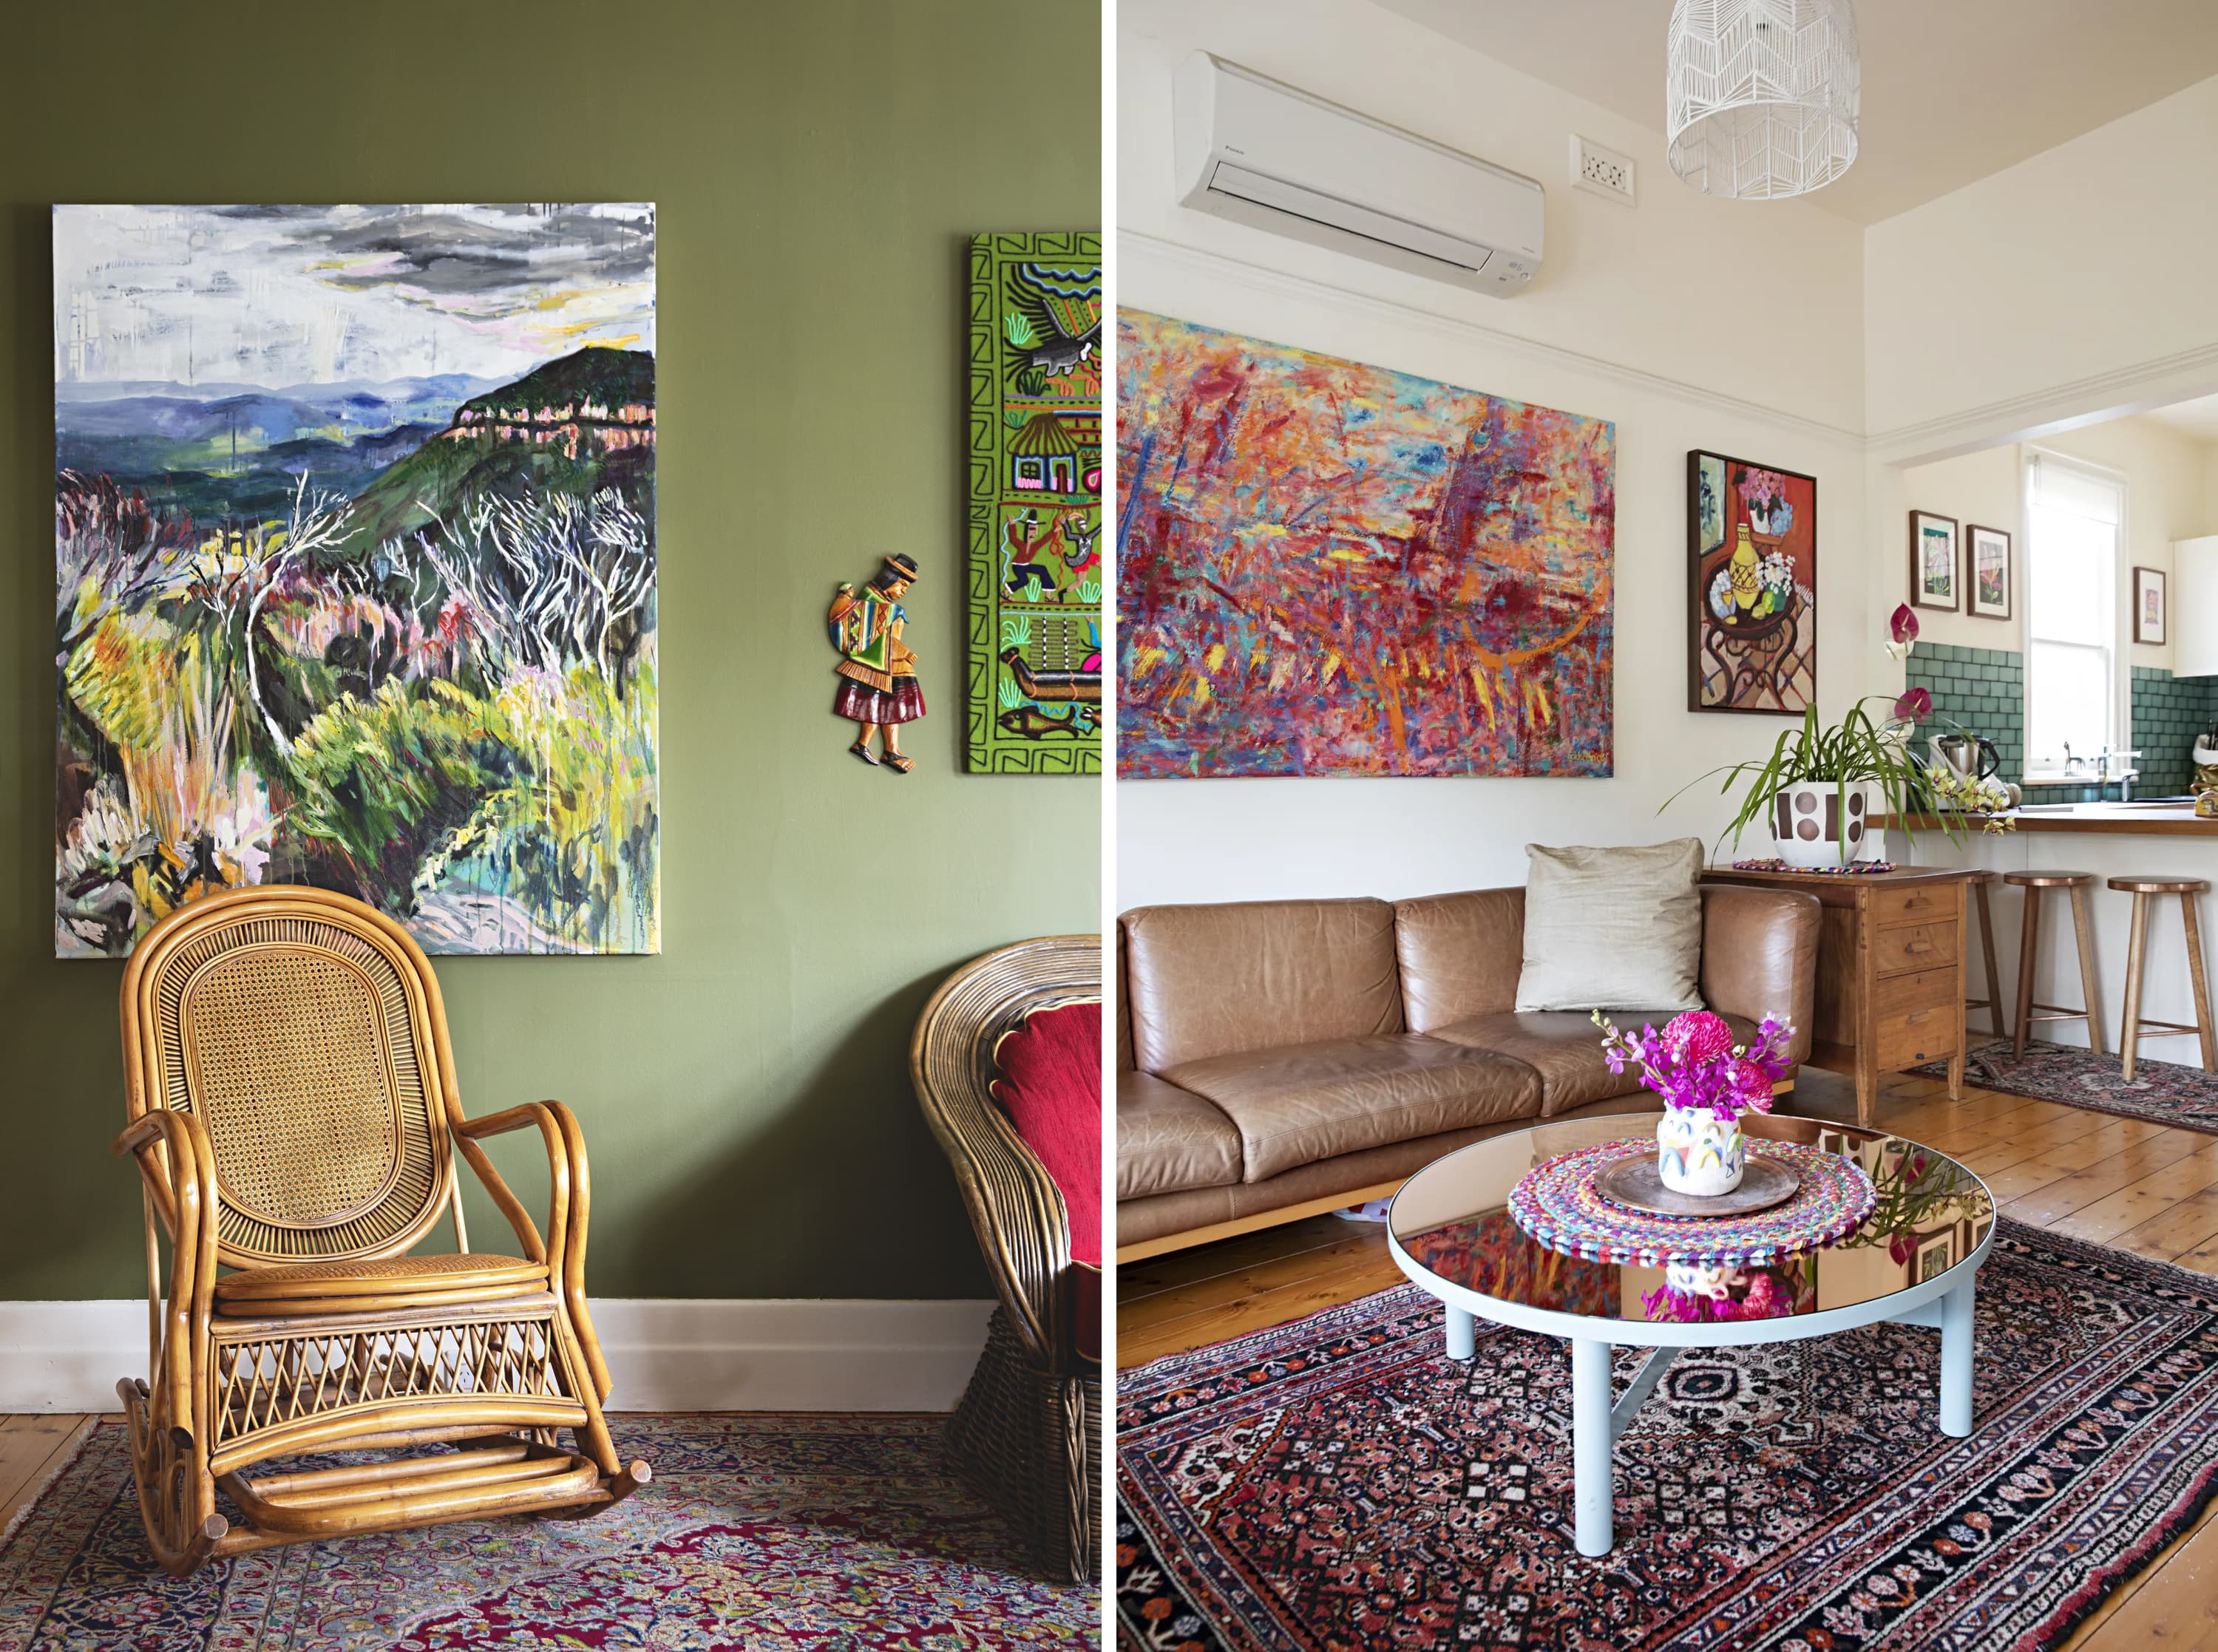 This Creative Melbourne Home Has the Most Envy-Inducing Collection of Colorful Art